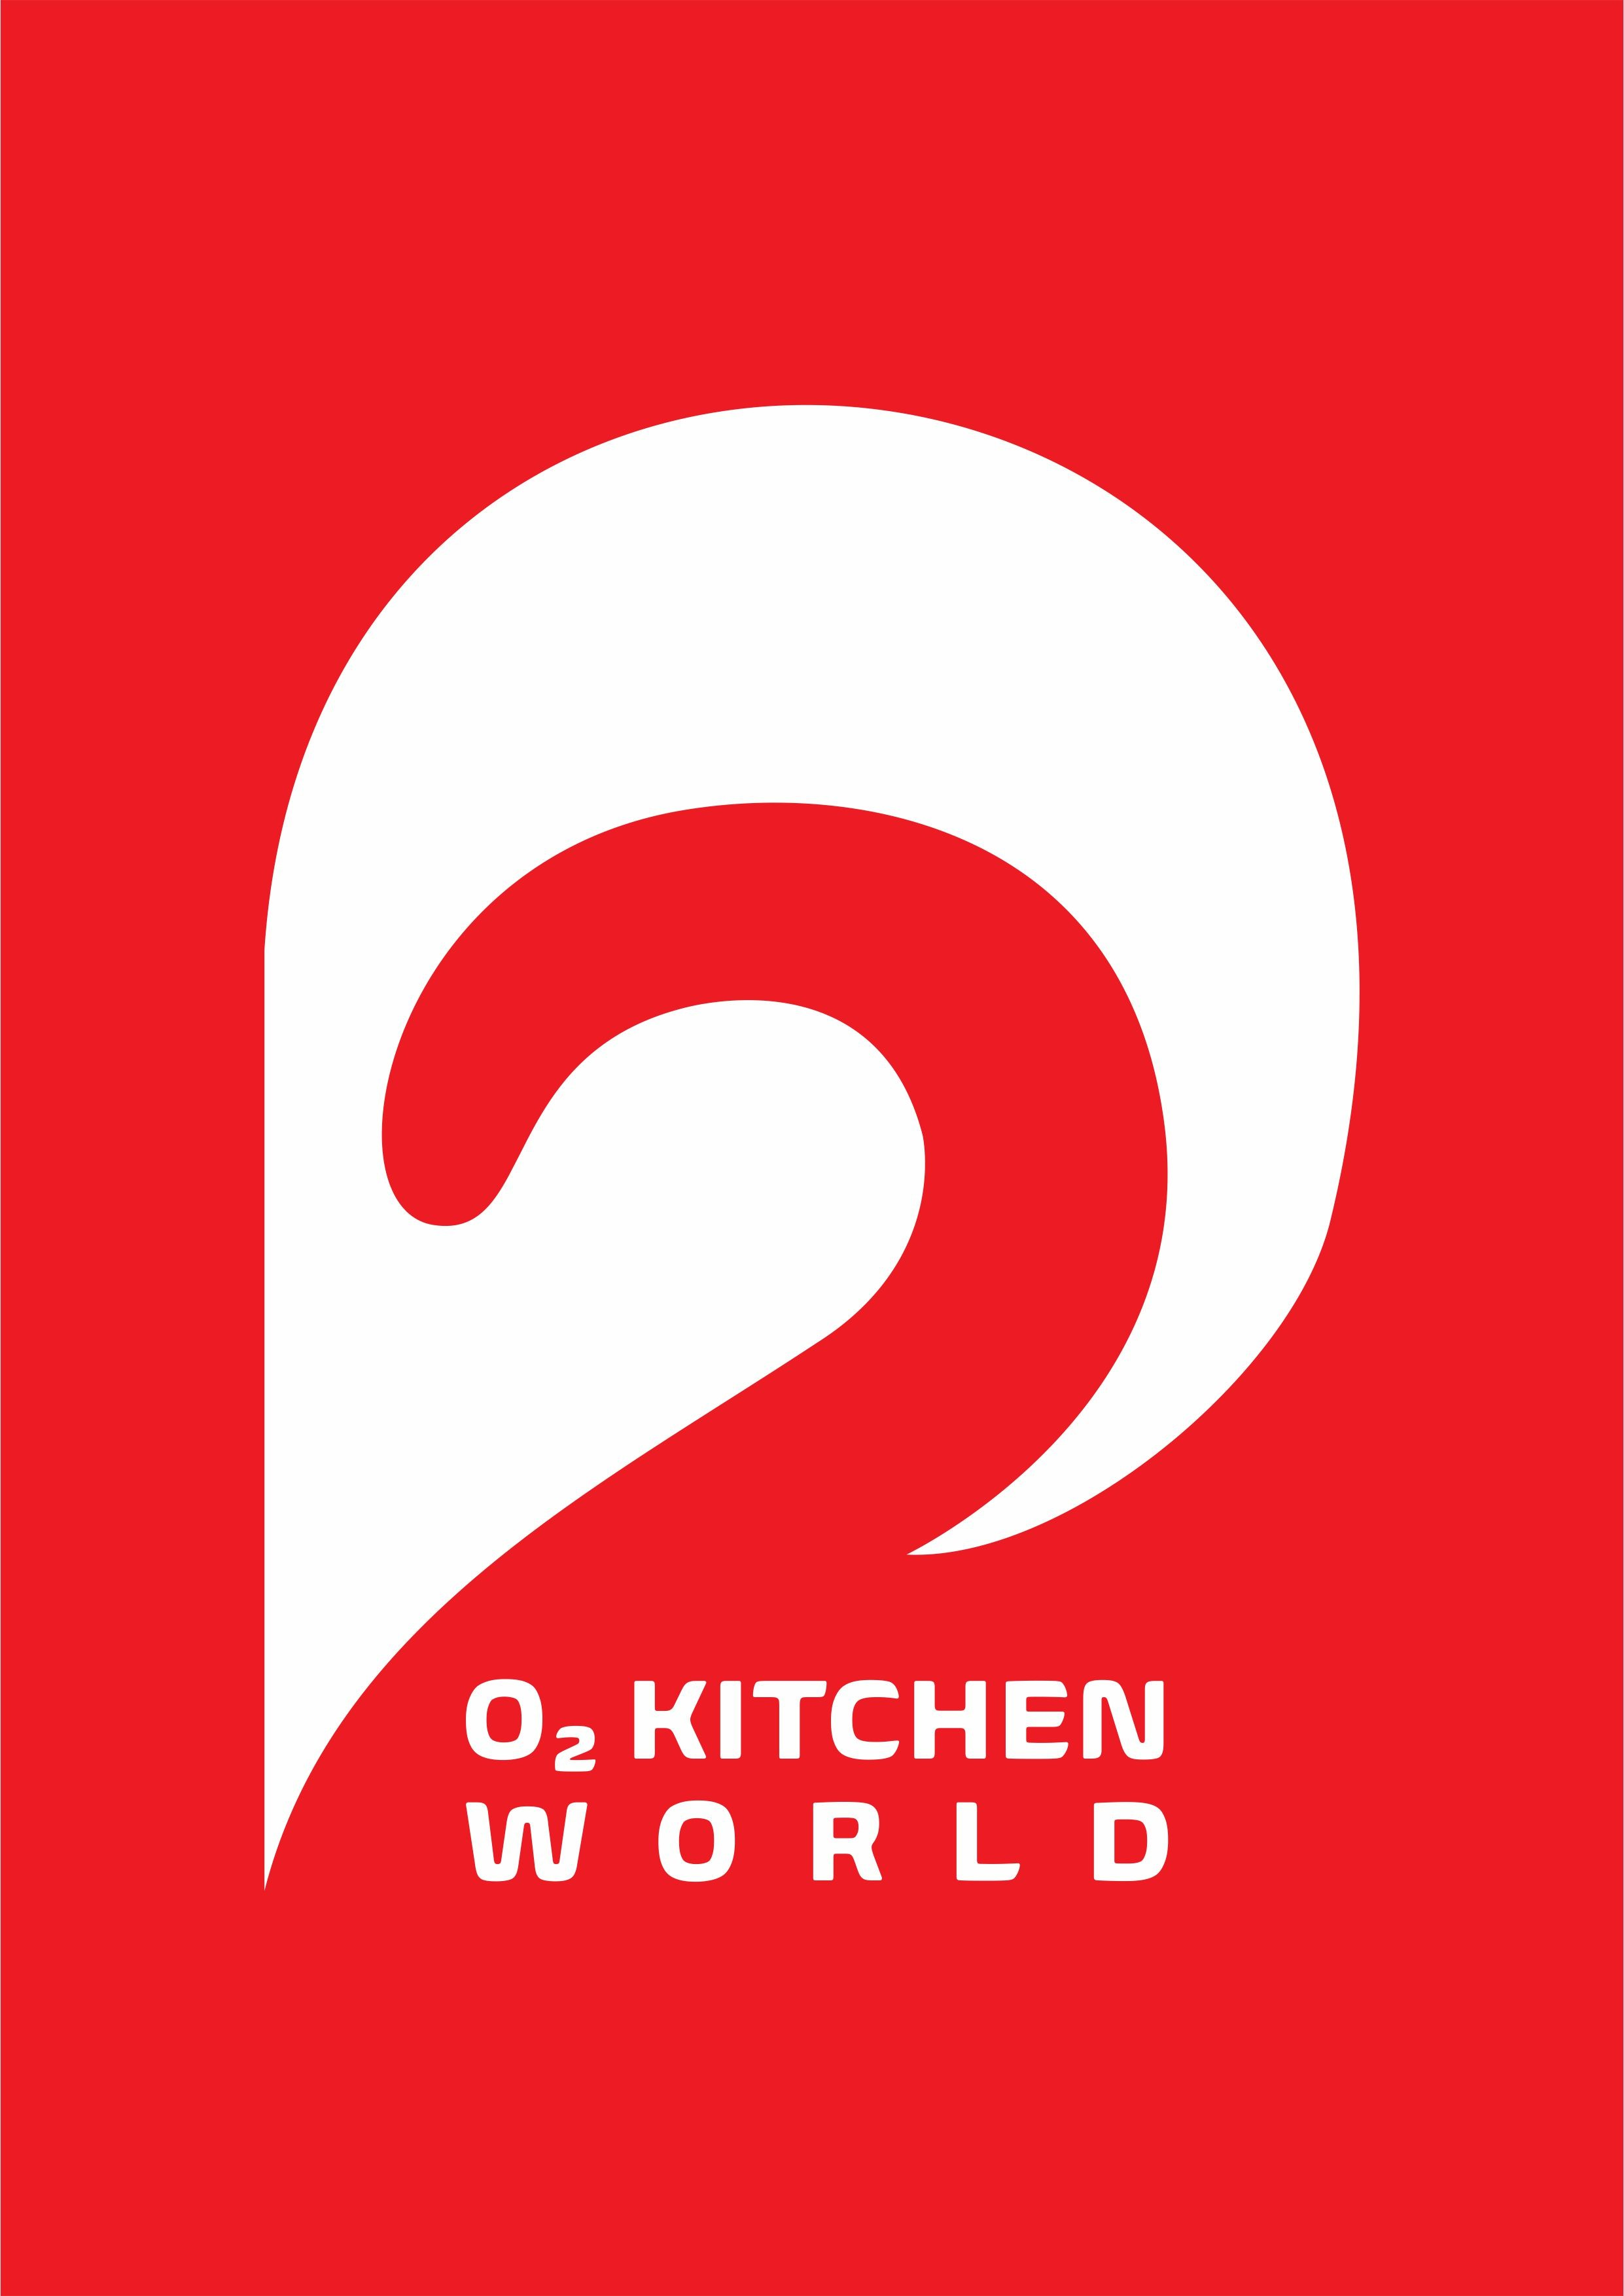 O2kitchen